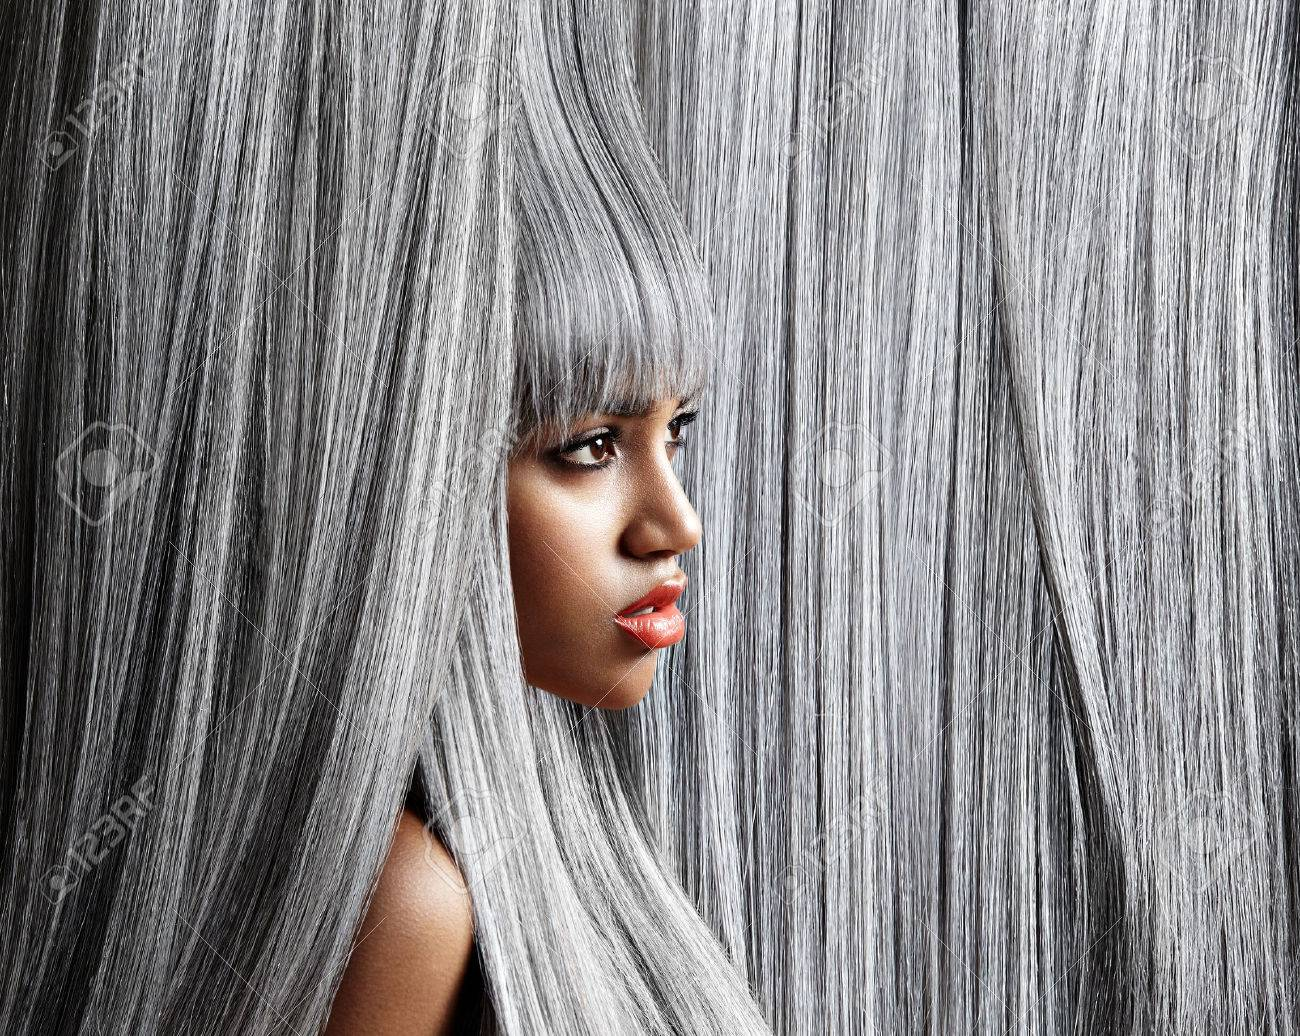 Woman's profile in trendy grey hair background - 51992991